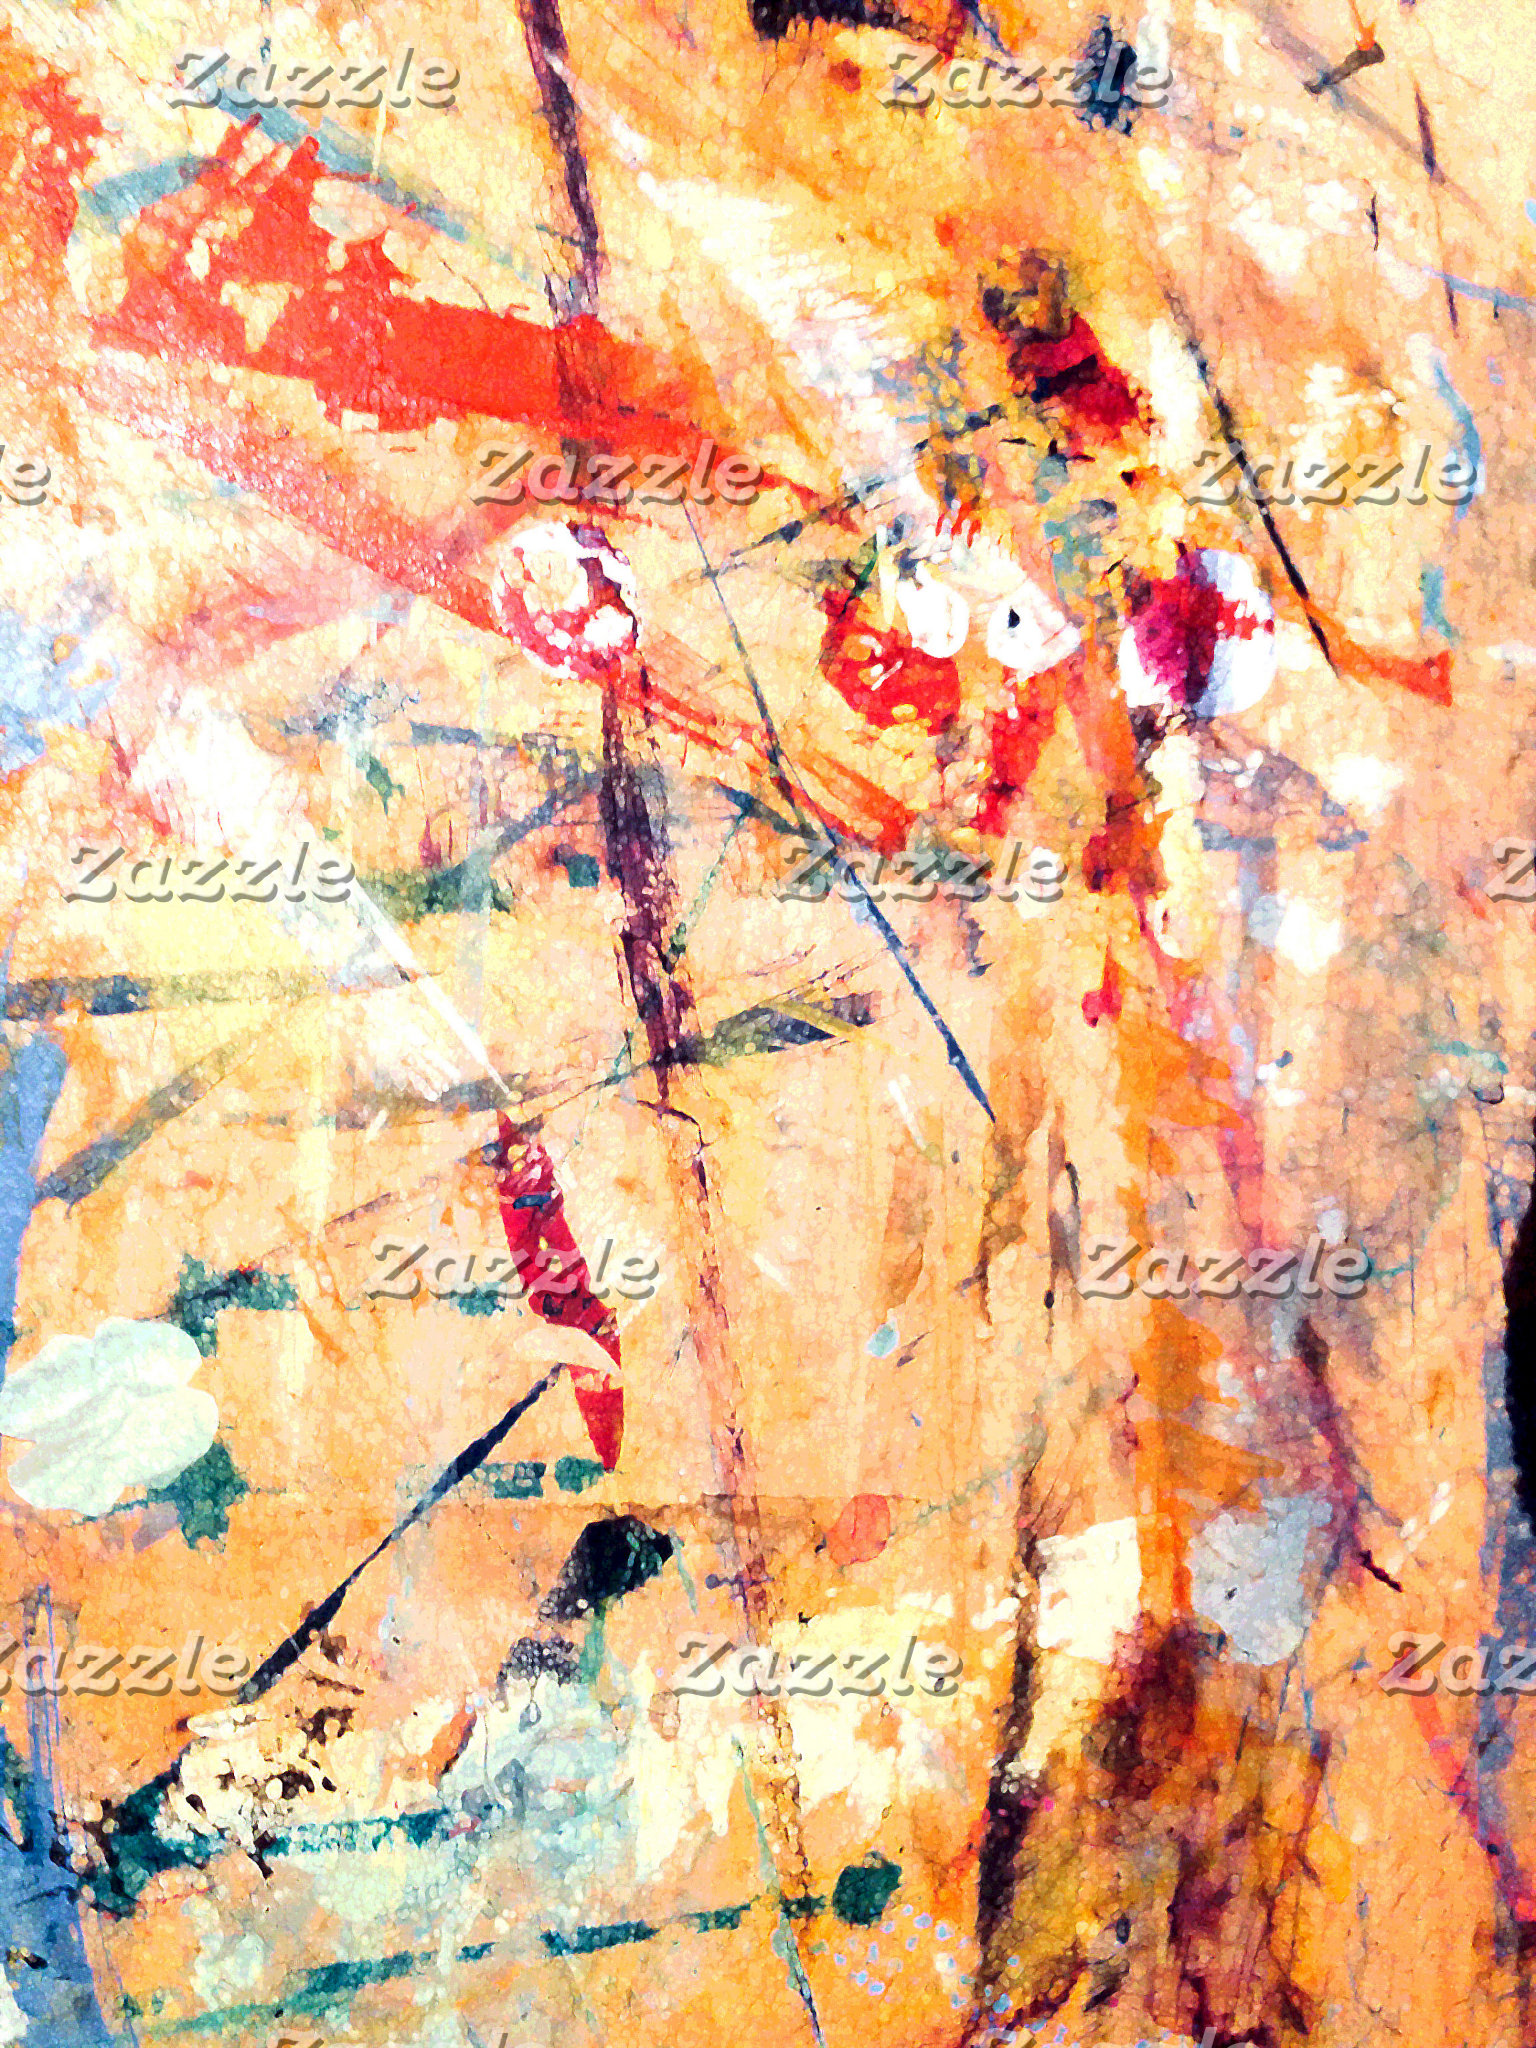 Abstract, Hand-Painted, Mixed Media